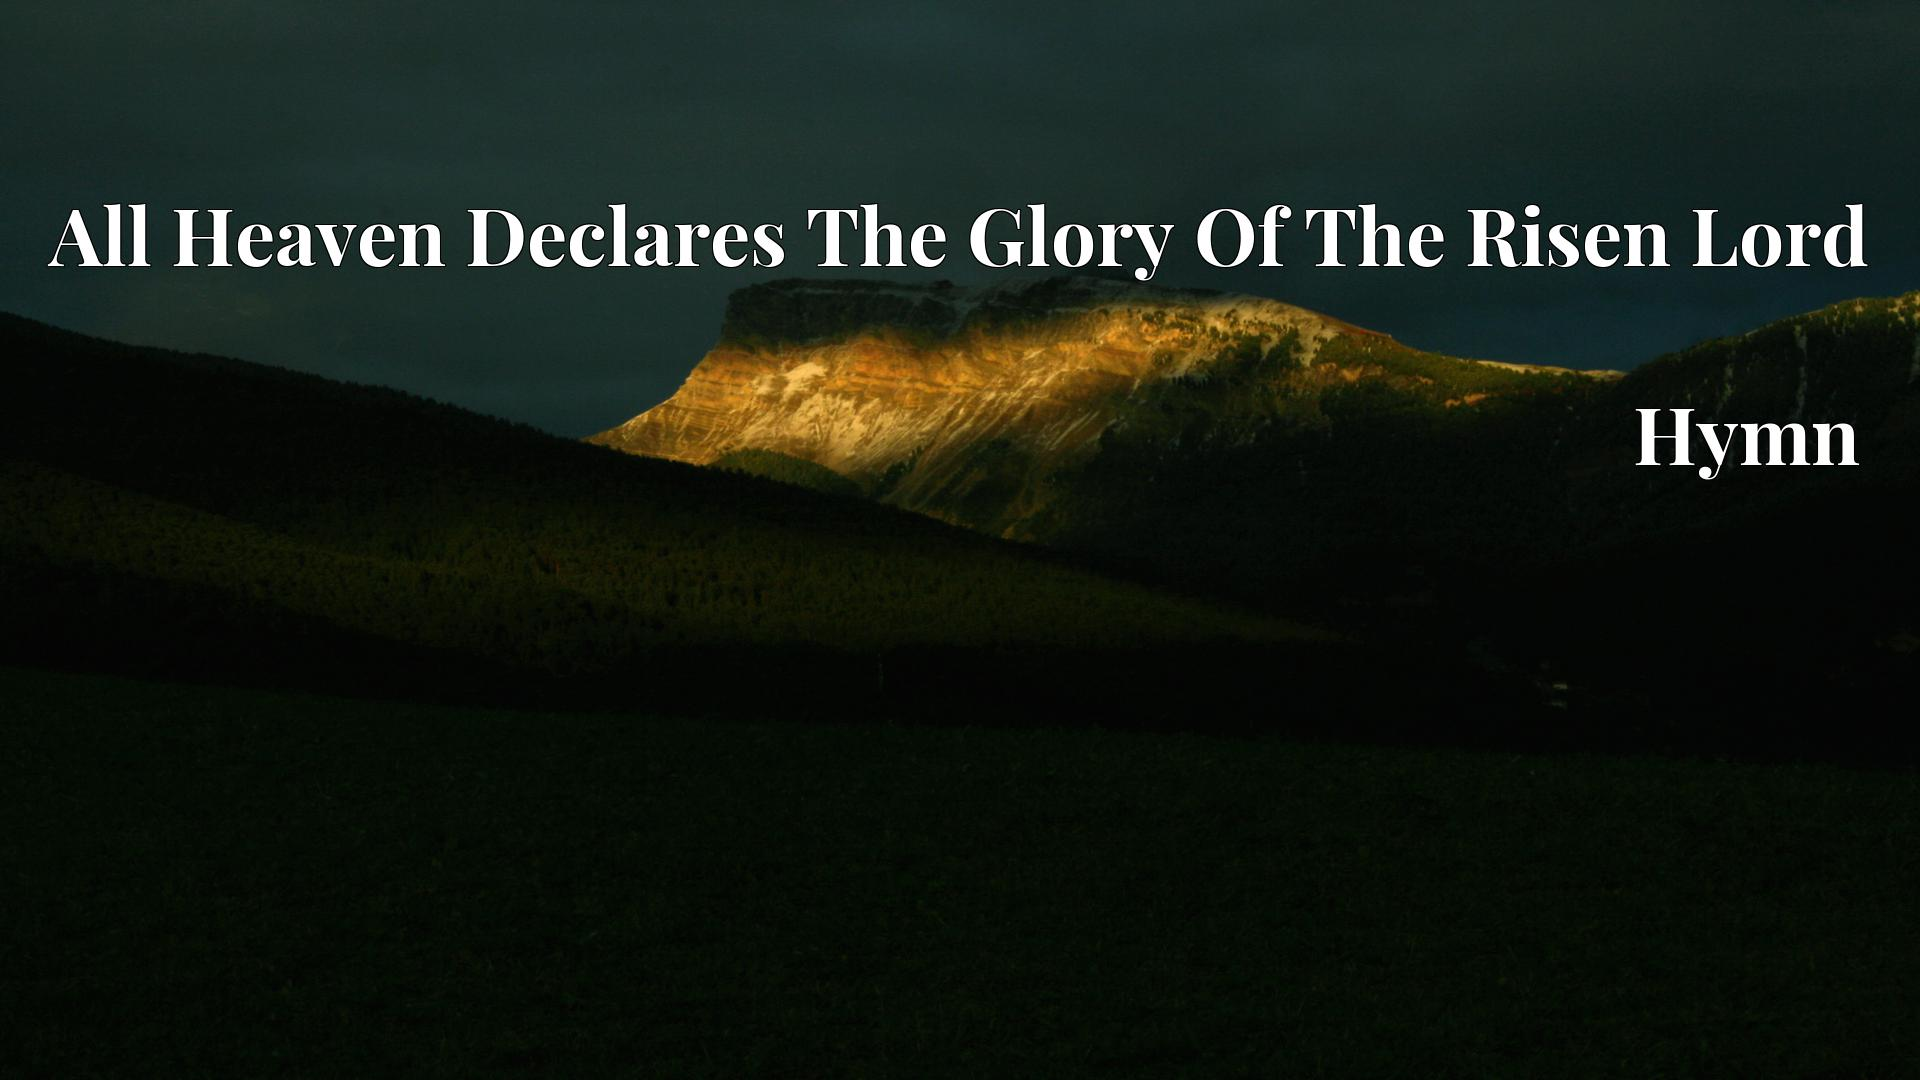 All Heaven Declares The Glory Of The Risen Lord - Hymn